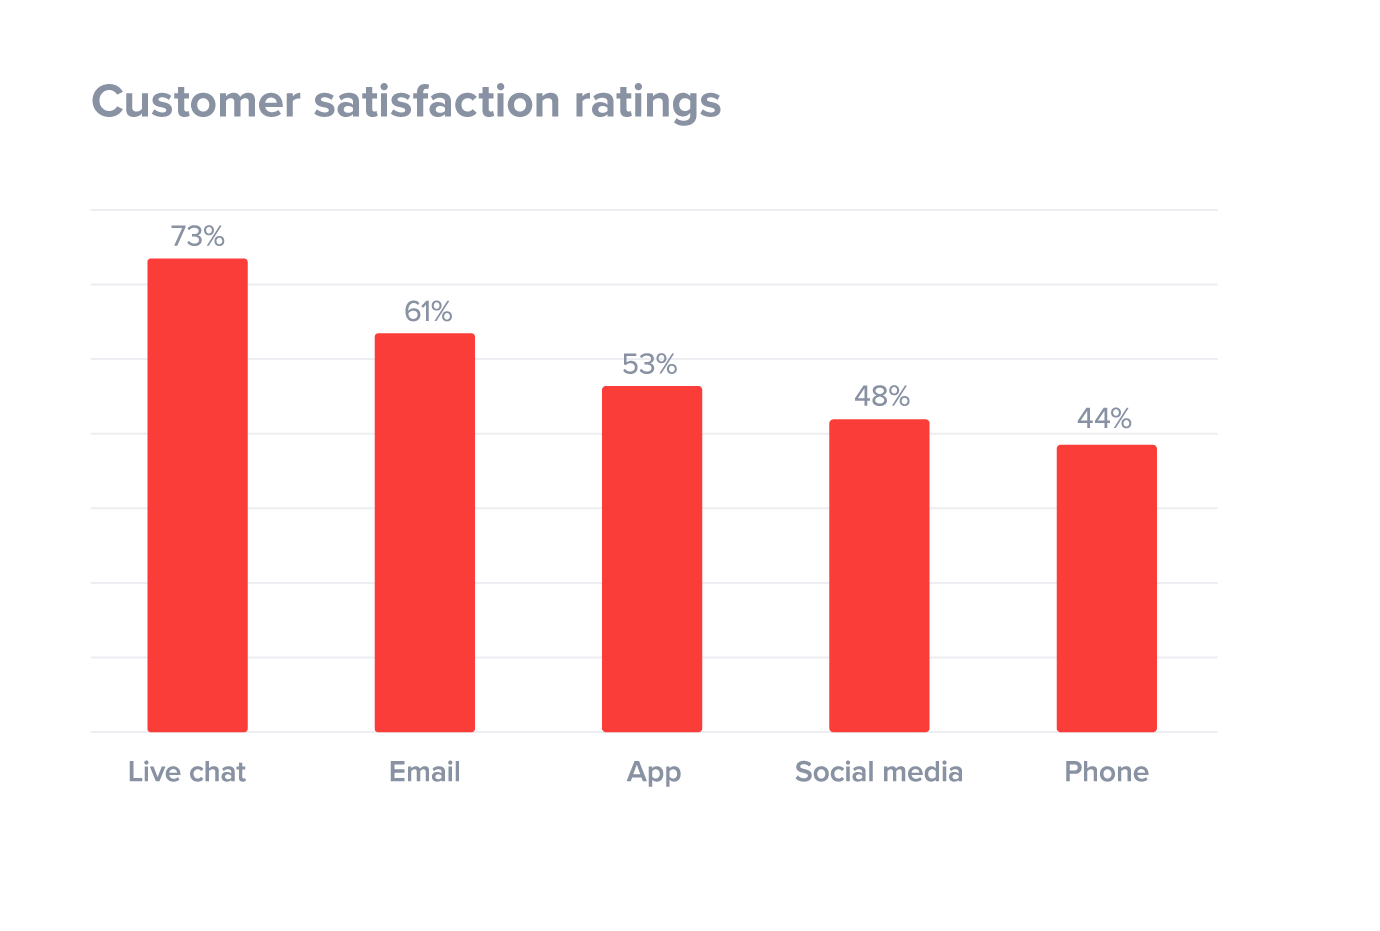 customer-satisfaction-ratings-by-channel